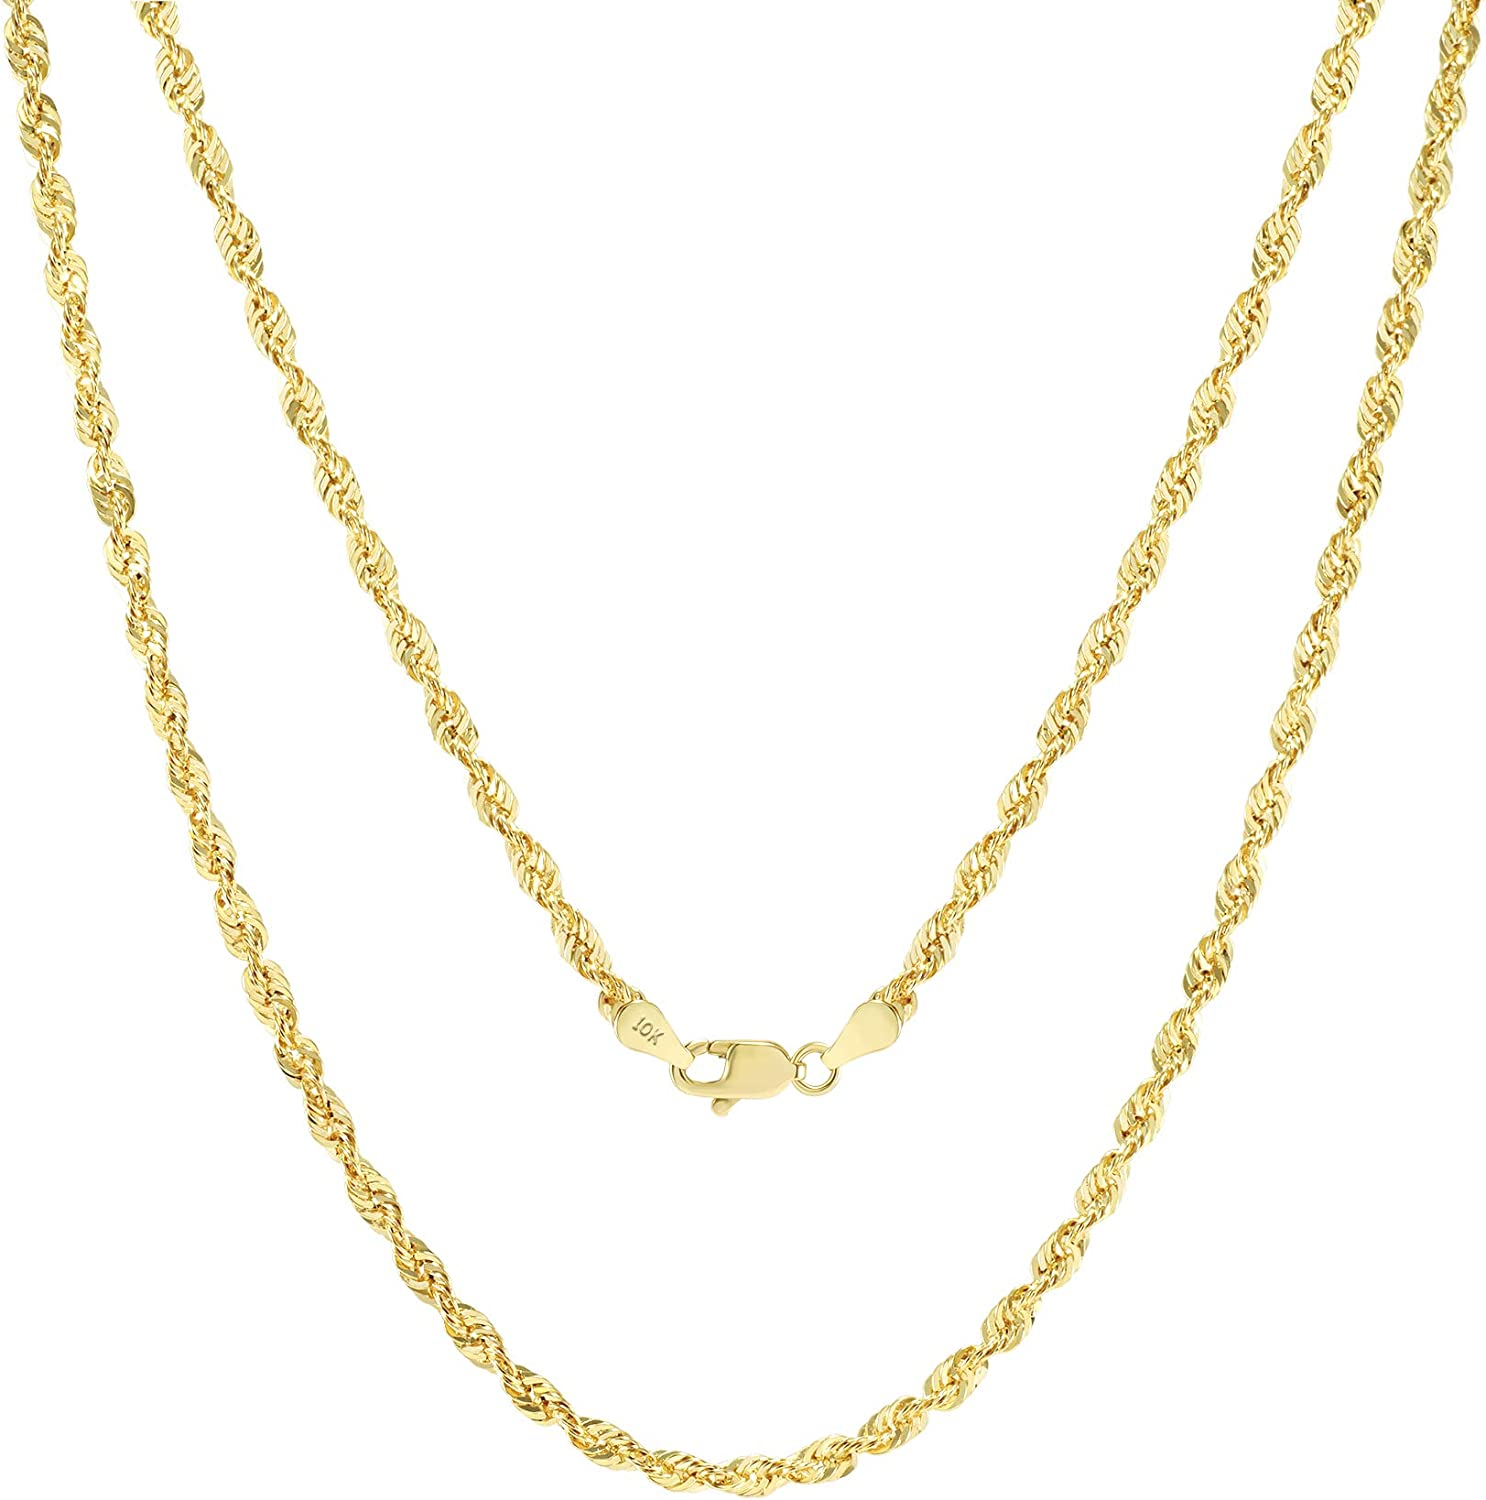 Nuragold 10k Yellow Gold 3mm Diamond Cut Rope Chain Pendant Necklace, Mens Womens Lobster Lock 16